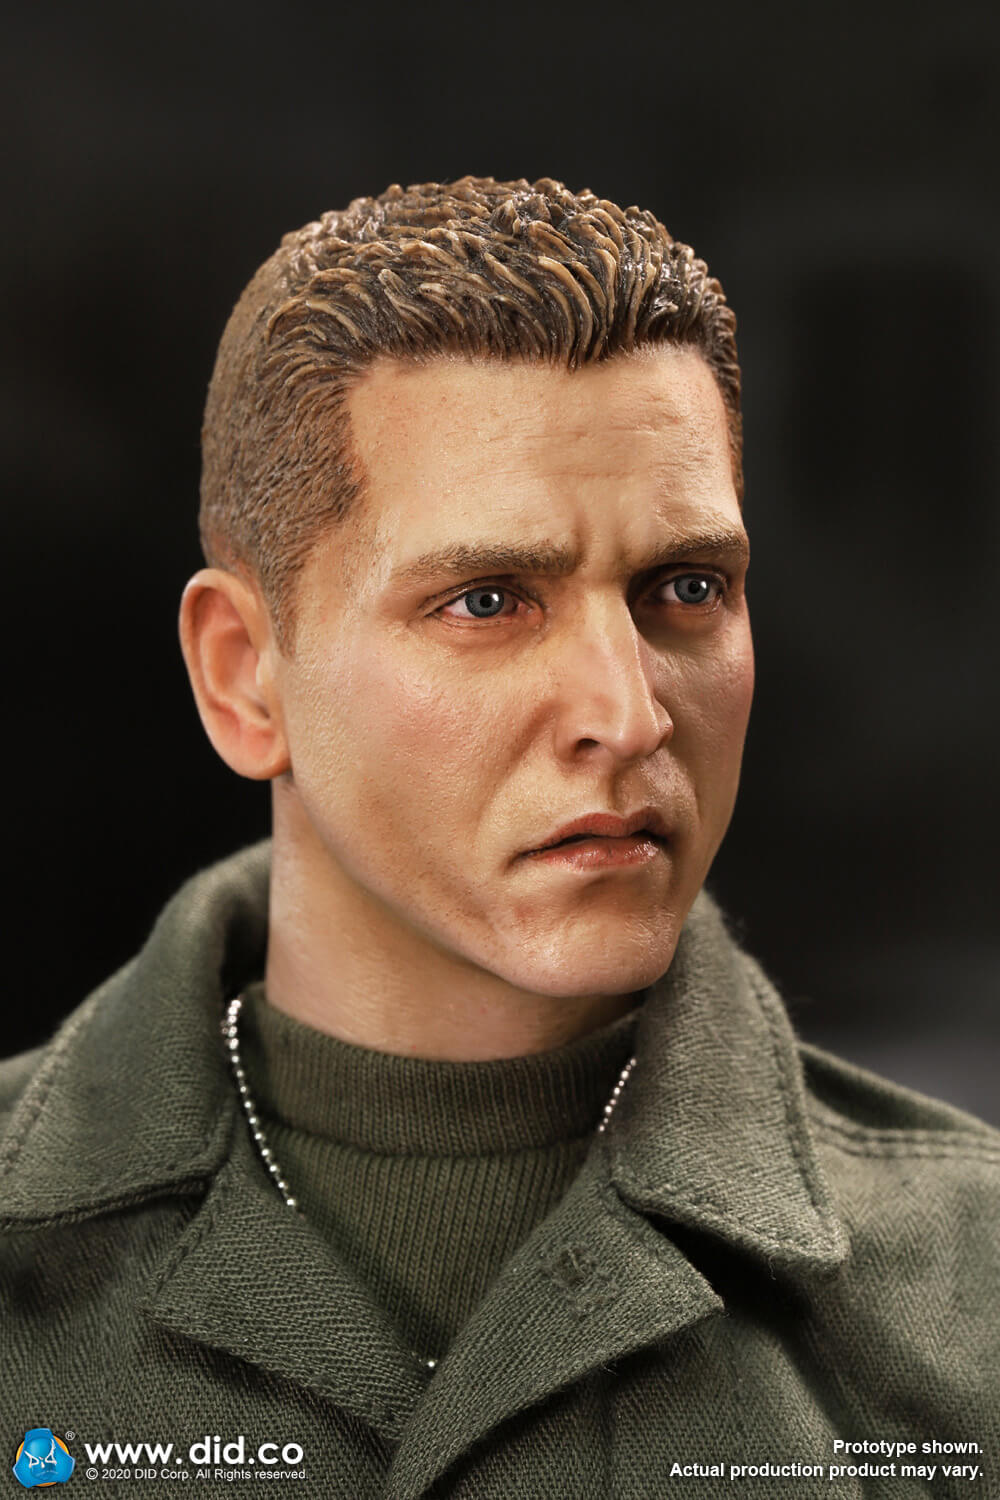 DiD - NEW PRODUCT: DiD: A80144 WWII US 2nd Ranger Battalion Series 4 Private Jackson 10314